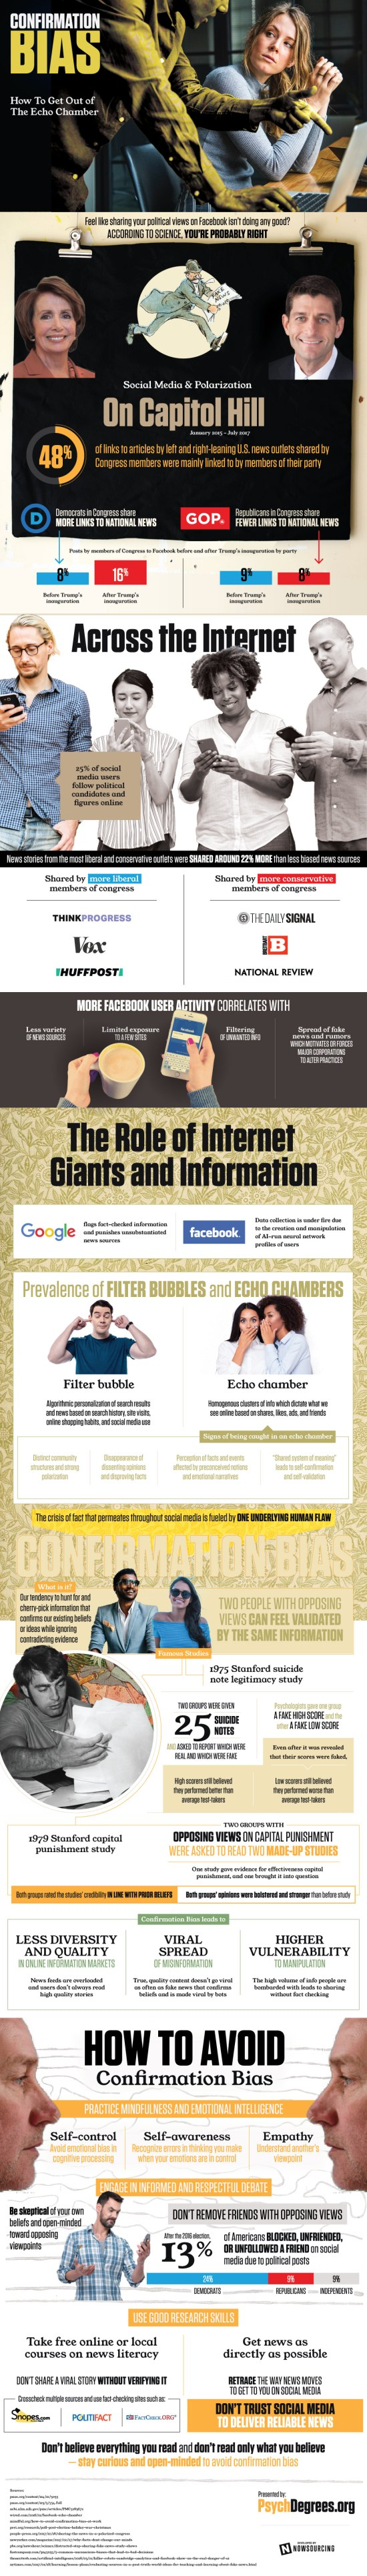 Getting Out Of The Social Media Echo Chamber 1